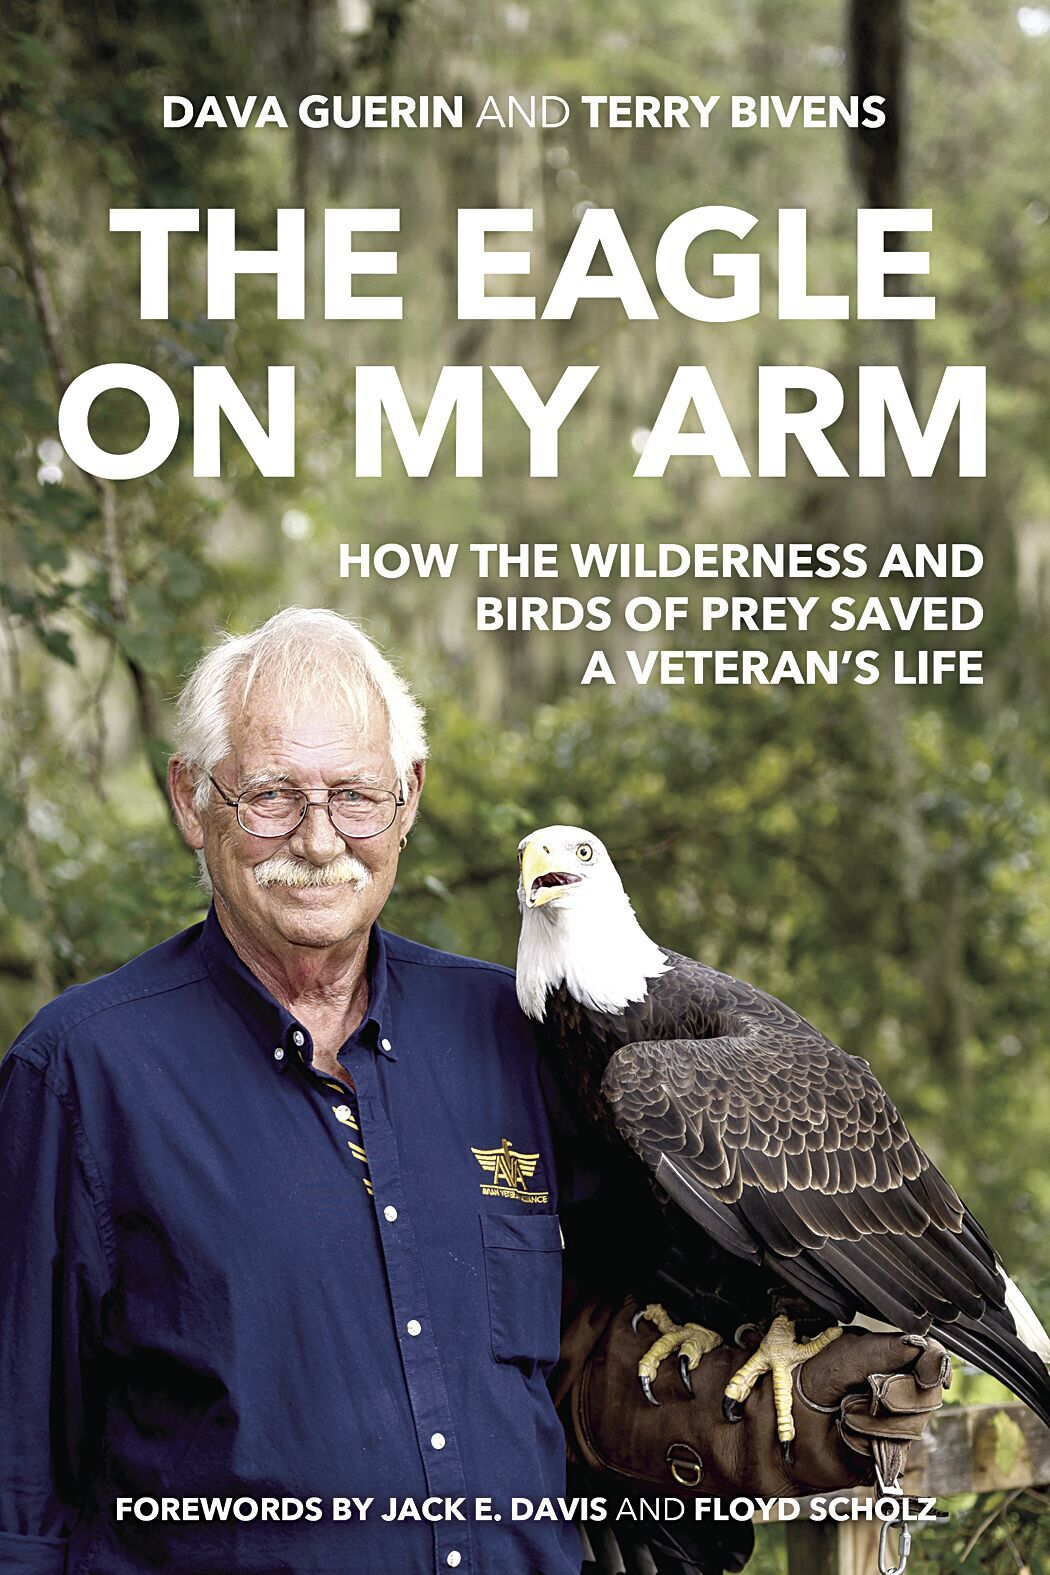 Falconer continues mission to help veterans, birds of prey